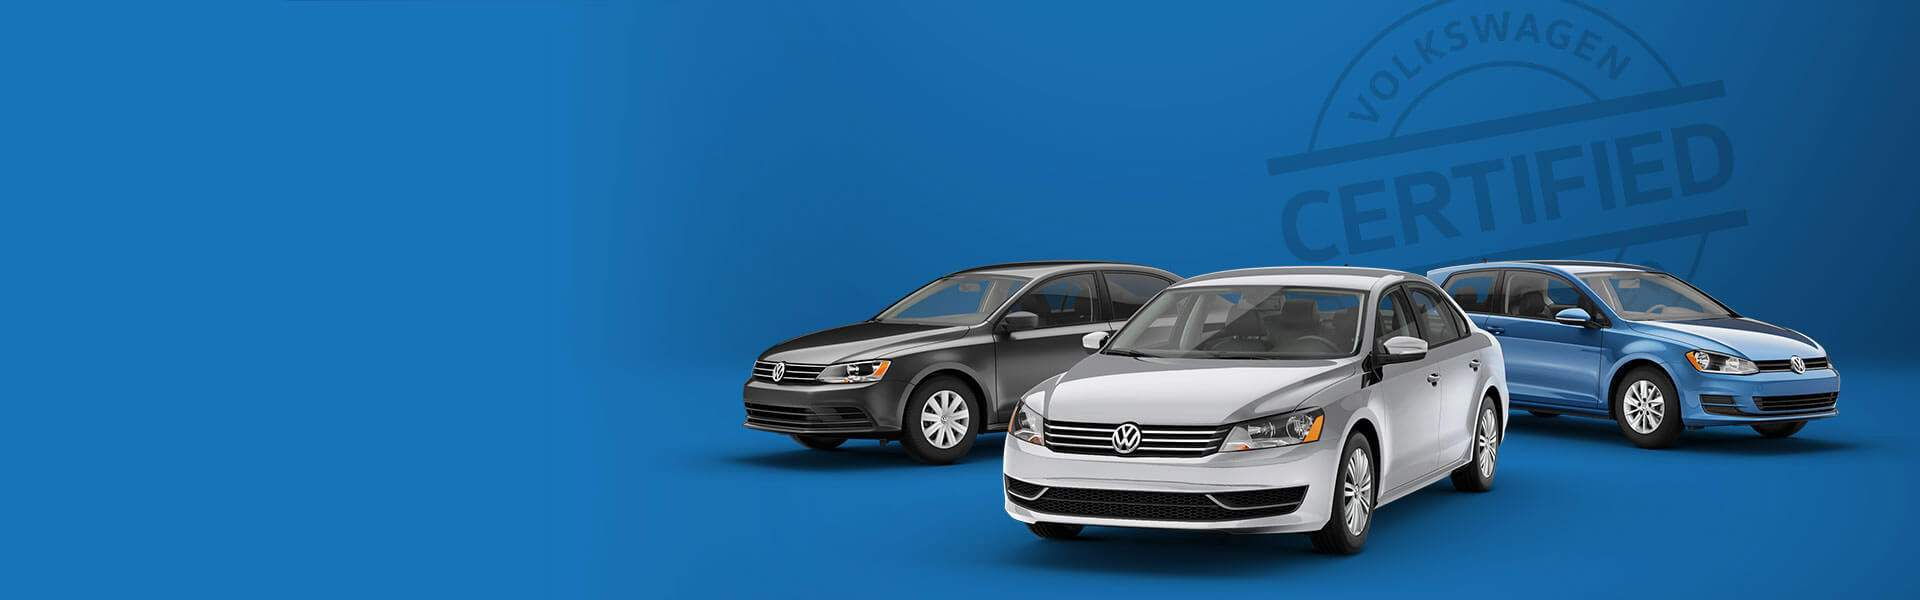 Volkswagen Certified Pre-Owned in Pittsburgh, PA